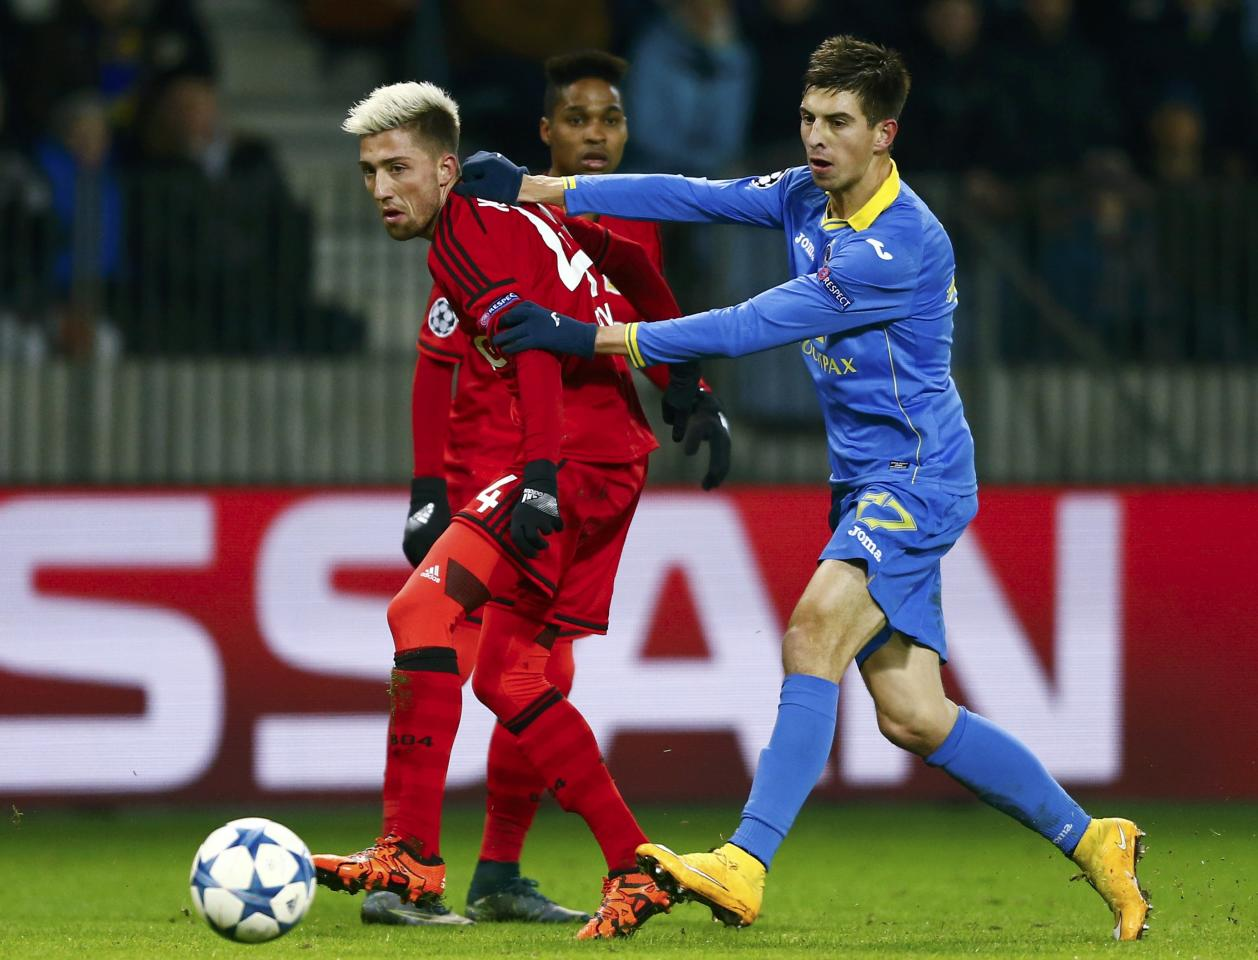 Football Soccer - BATE Borisov v Bayer Leverkusen - Champions League Group Stage - Group E -  Borisov Arena, Borisov, Belarus - 24/11/2015  BATE Borisov's Aleksei Rios in action against Bayer Leverkusen's Jonathan Tah REUTERS/Vasily Fedosenko